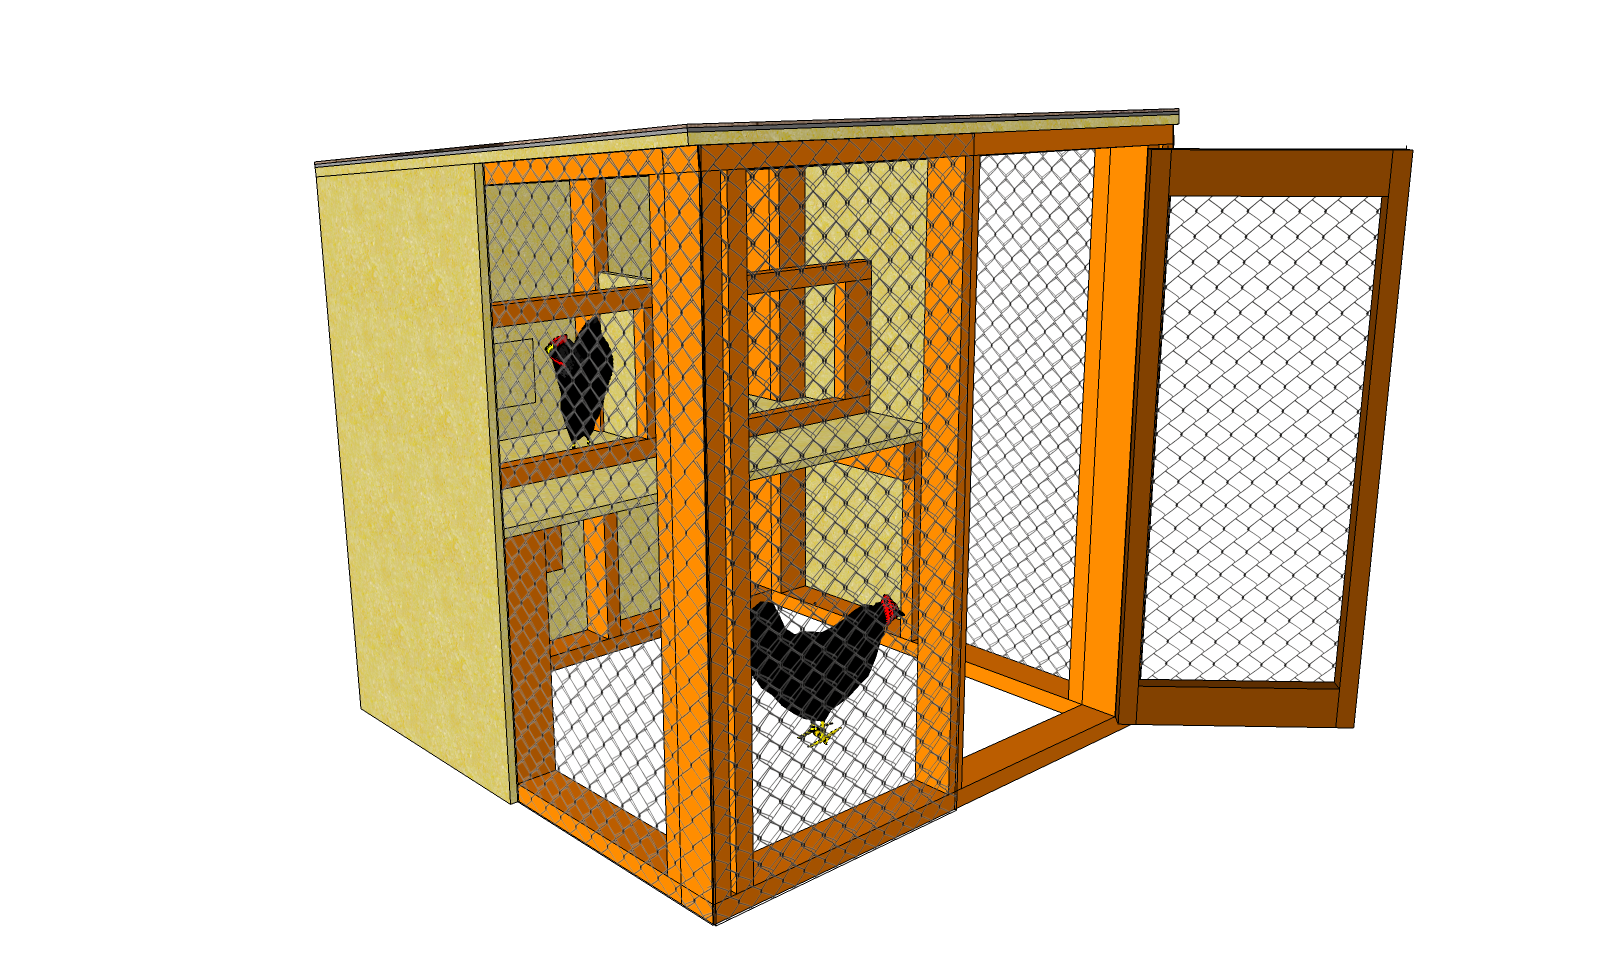 How To Build A Chicken Coop | Agrison